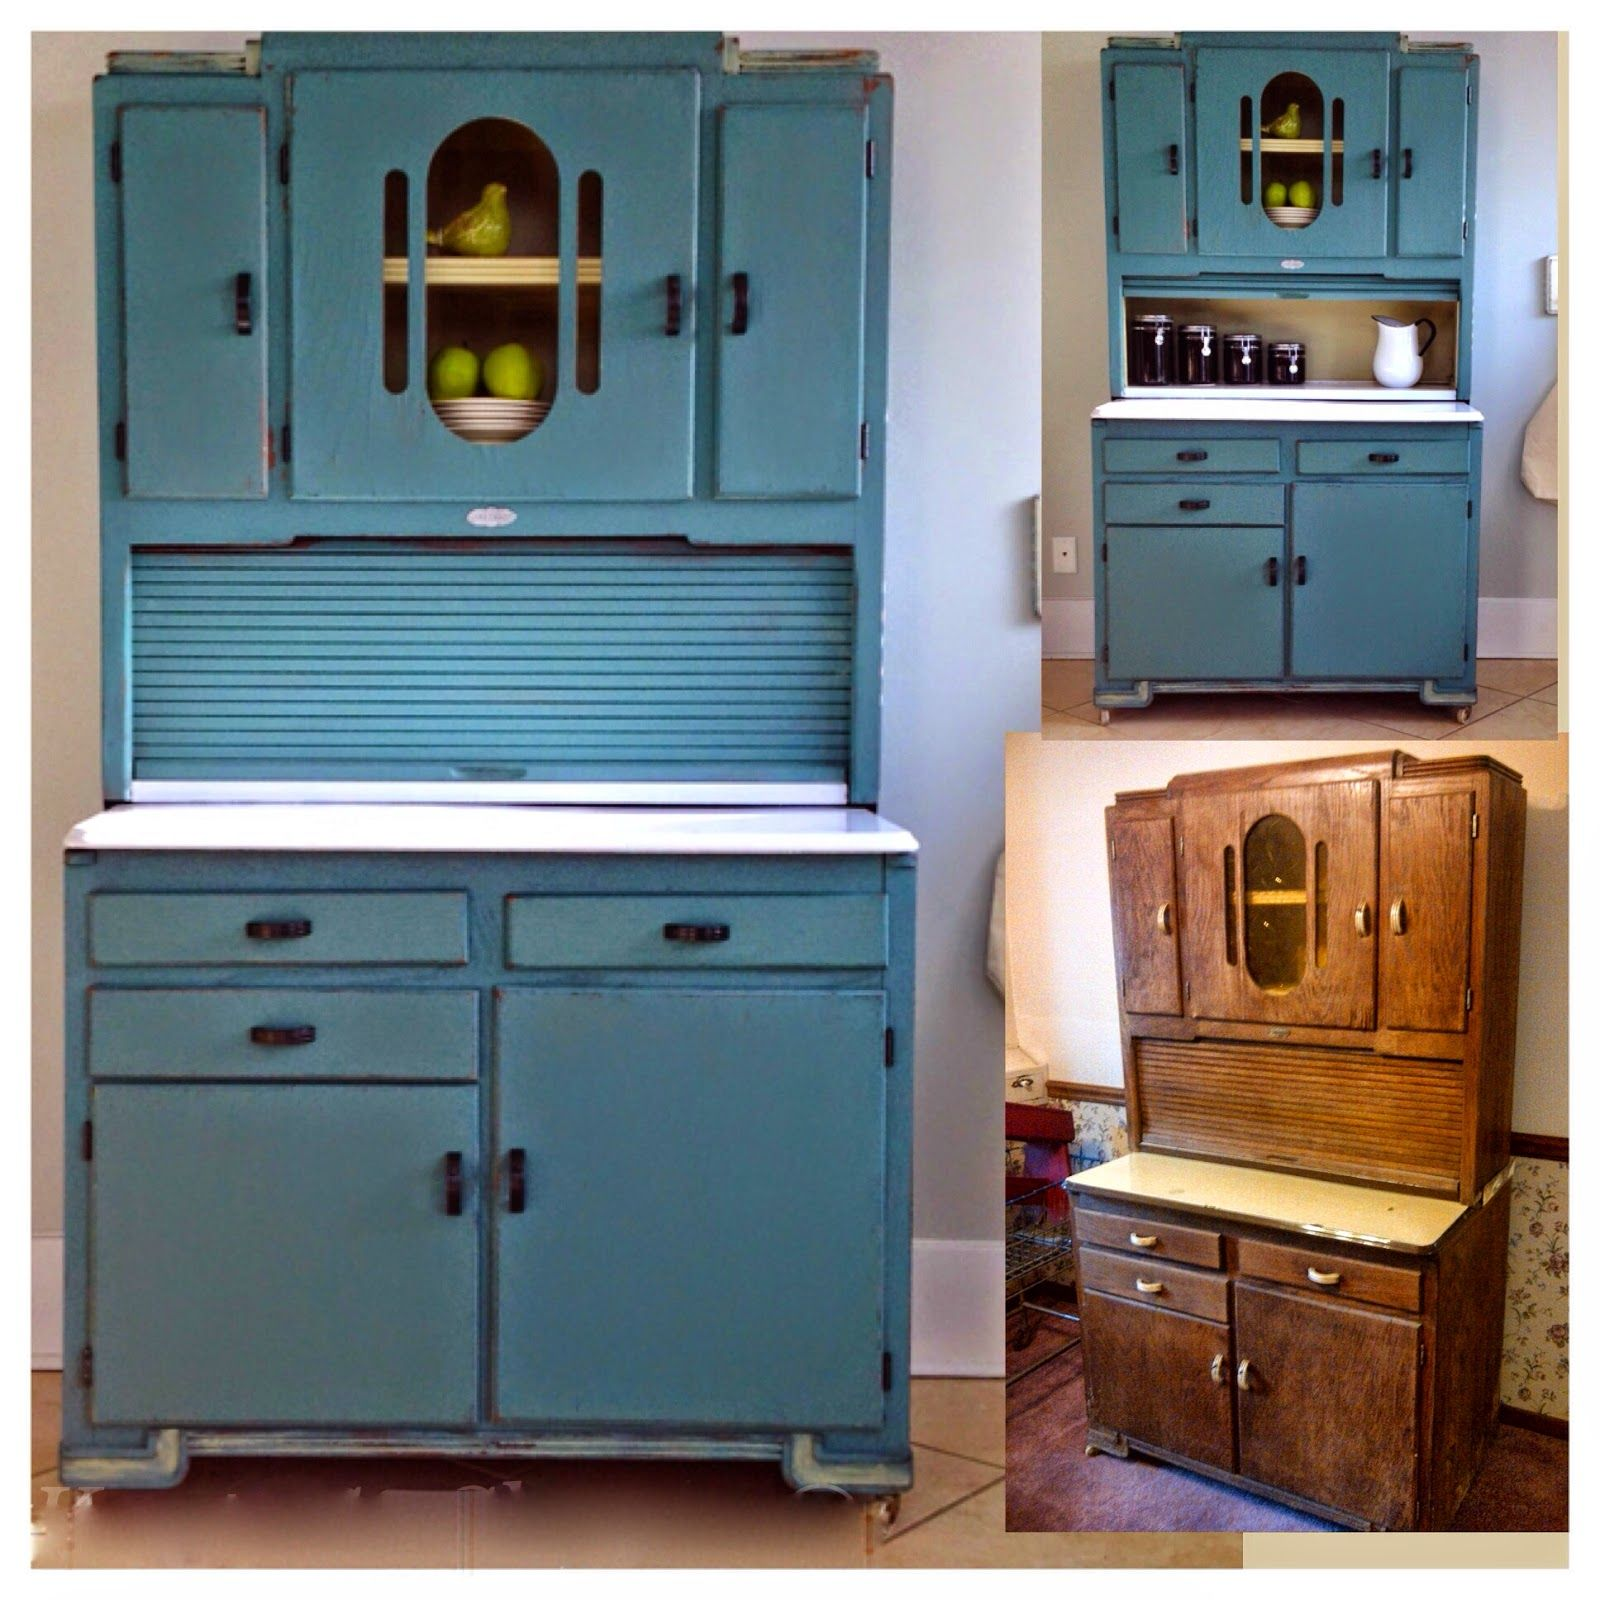 Refurbished Kitchen Cabinets: Old Hoosier Cabinet Refurbished By Bliss And Blossom